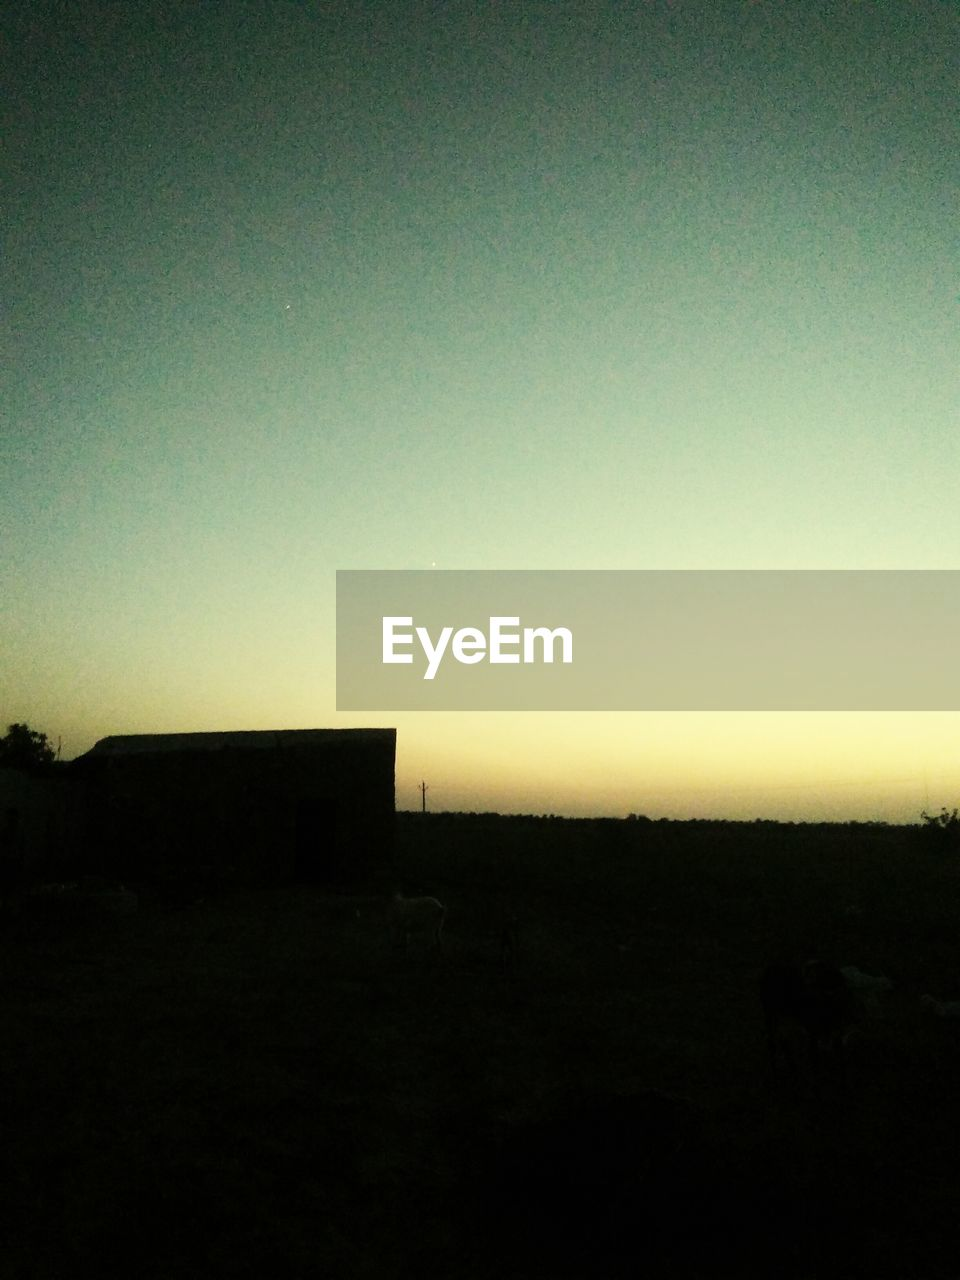 sky, silhouette, environment, copy space, sunset, landscape, scenics - nature, nature, clear sky, tranquil scene, tranquility, no people, beauty in nature, field, land, outdoors, architecture, dark, horizon over land, horizon